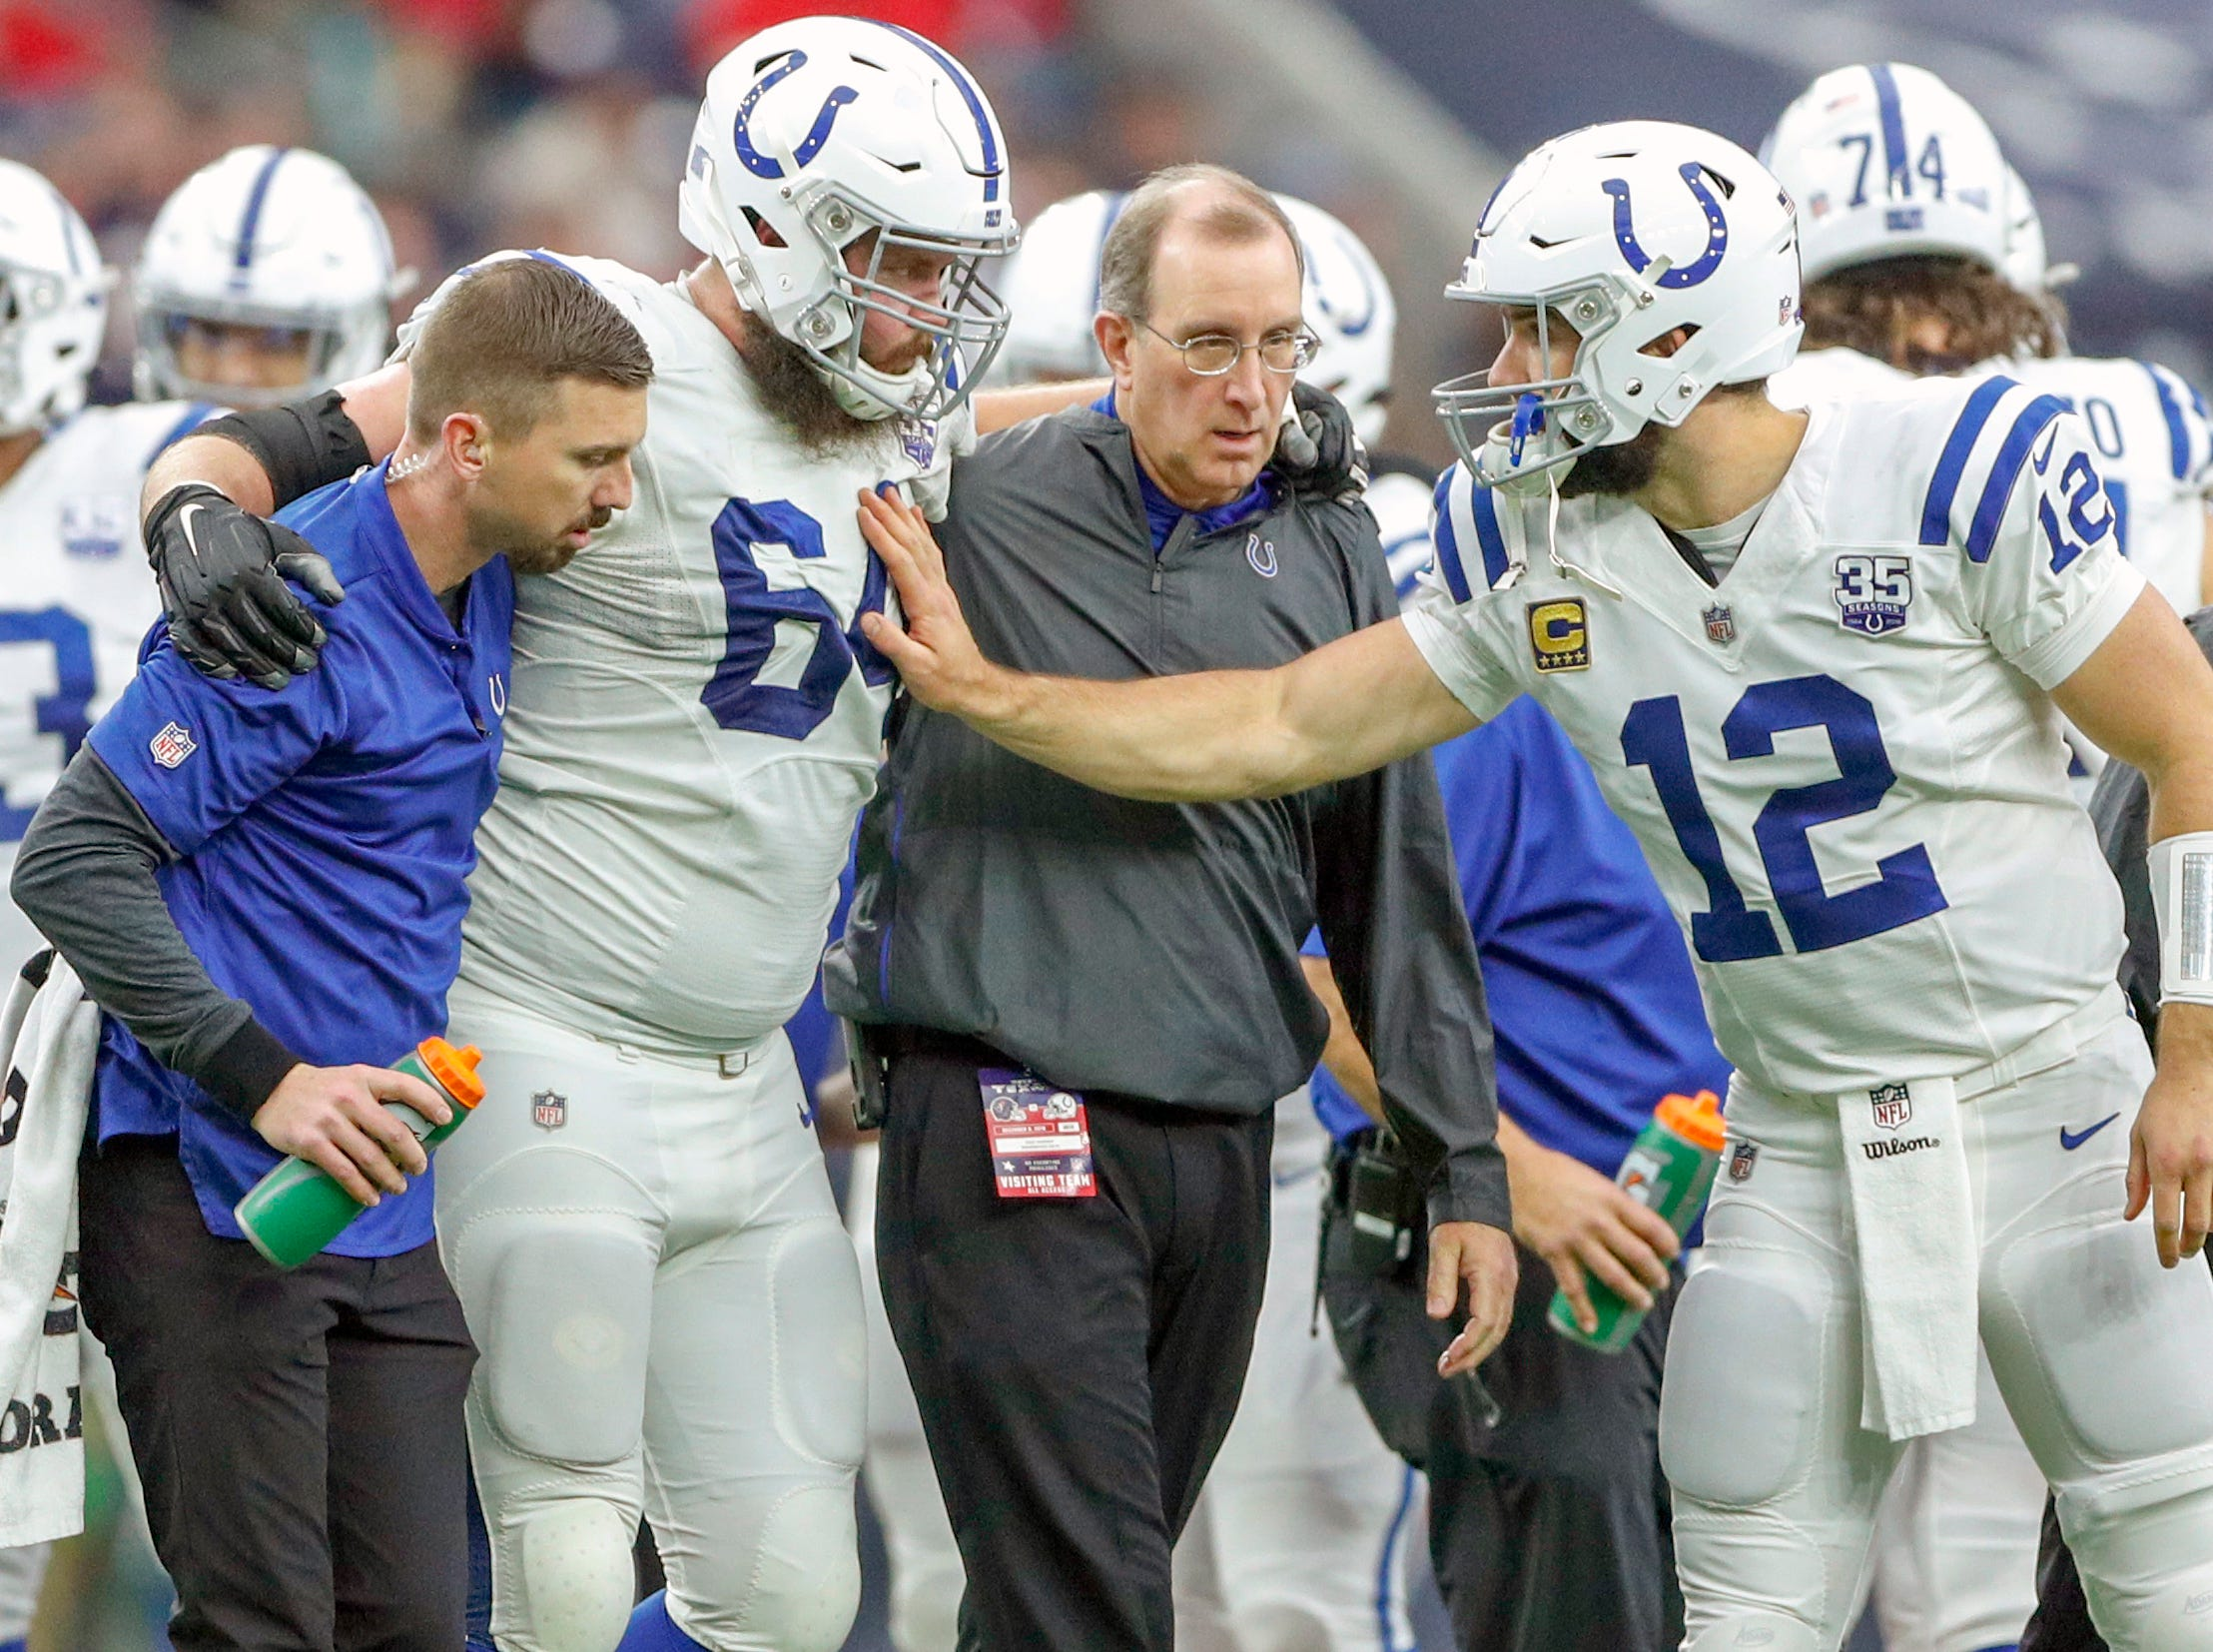 Indianapolis Colts quarterback Andrew Luck (12) checks on an injured Colts offensive guard Mark Glowinski (64) during the game against the Houston Texans at NRG Stadium in Houston on Sunday, Dec. 9, 2018.